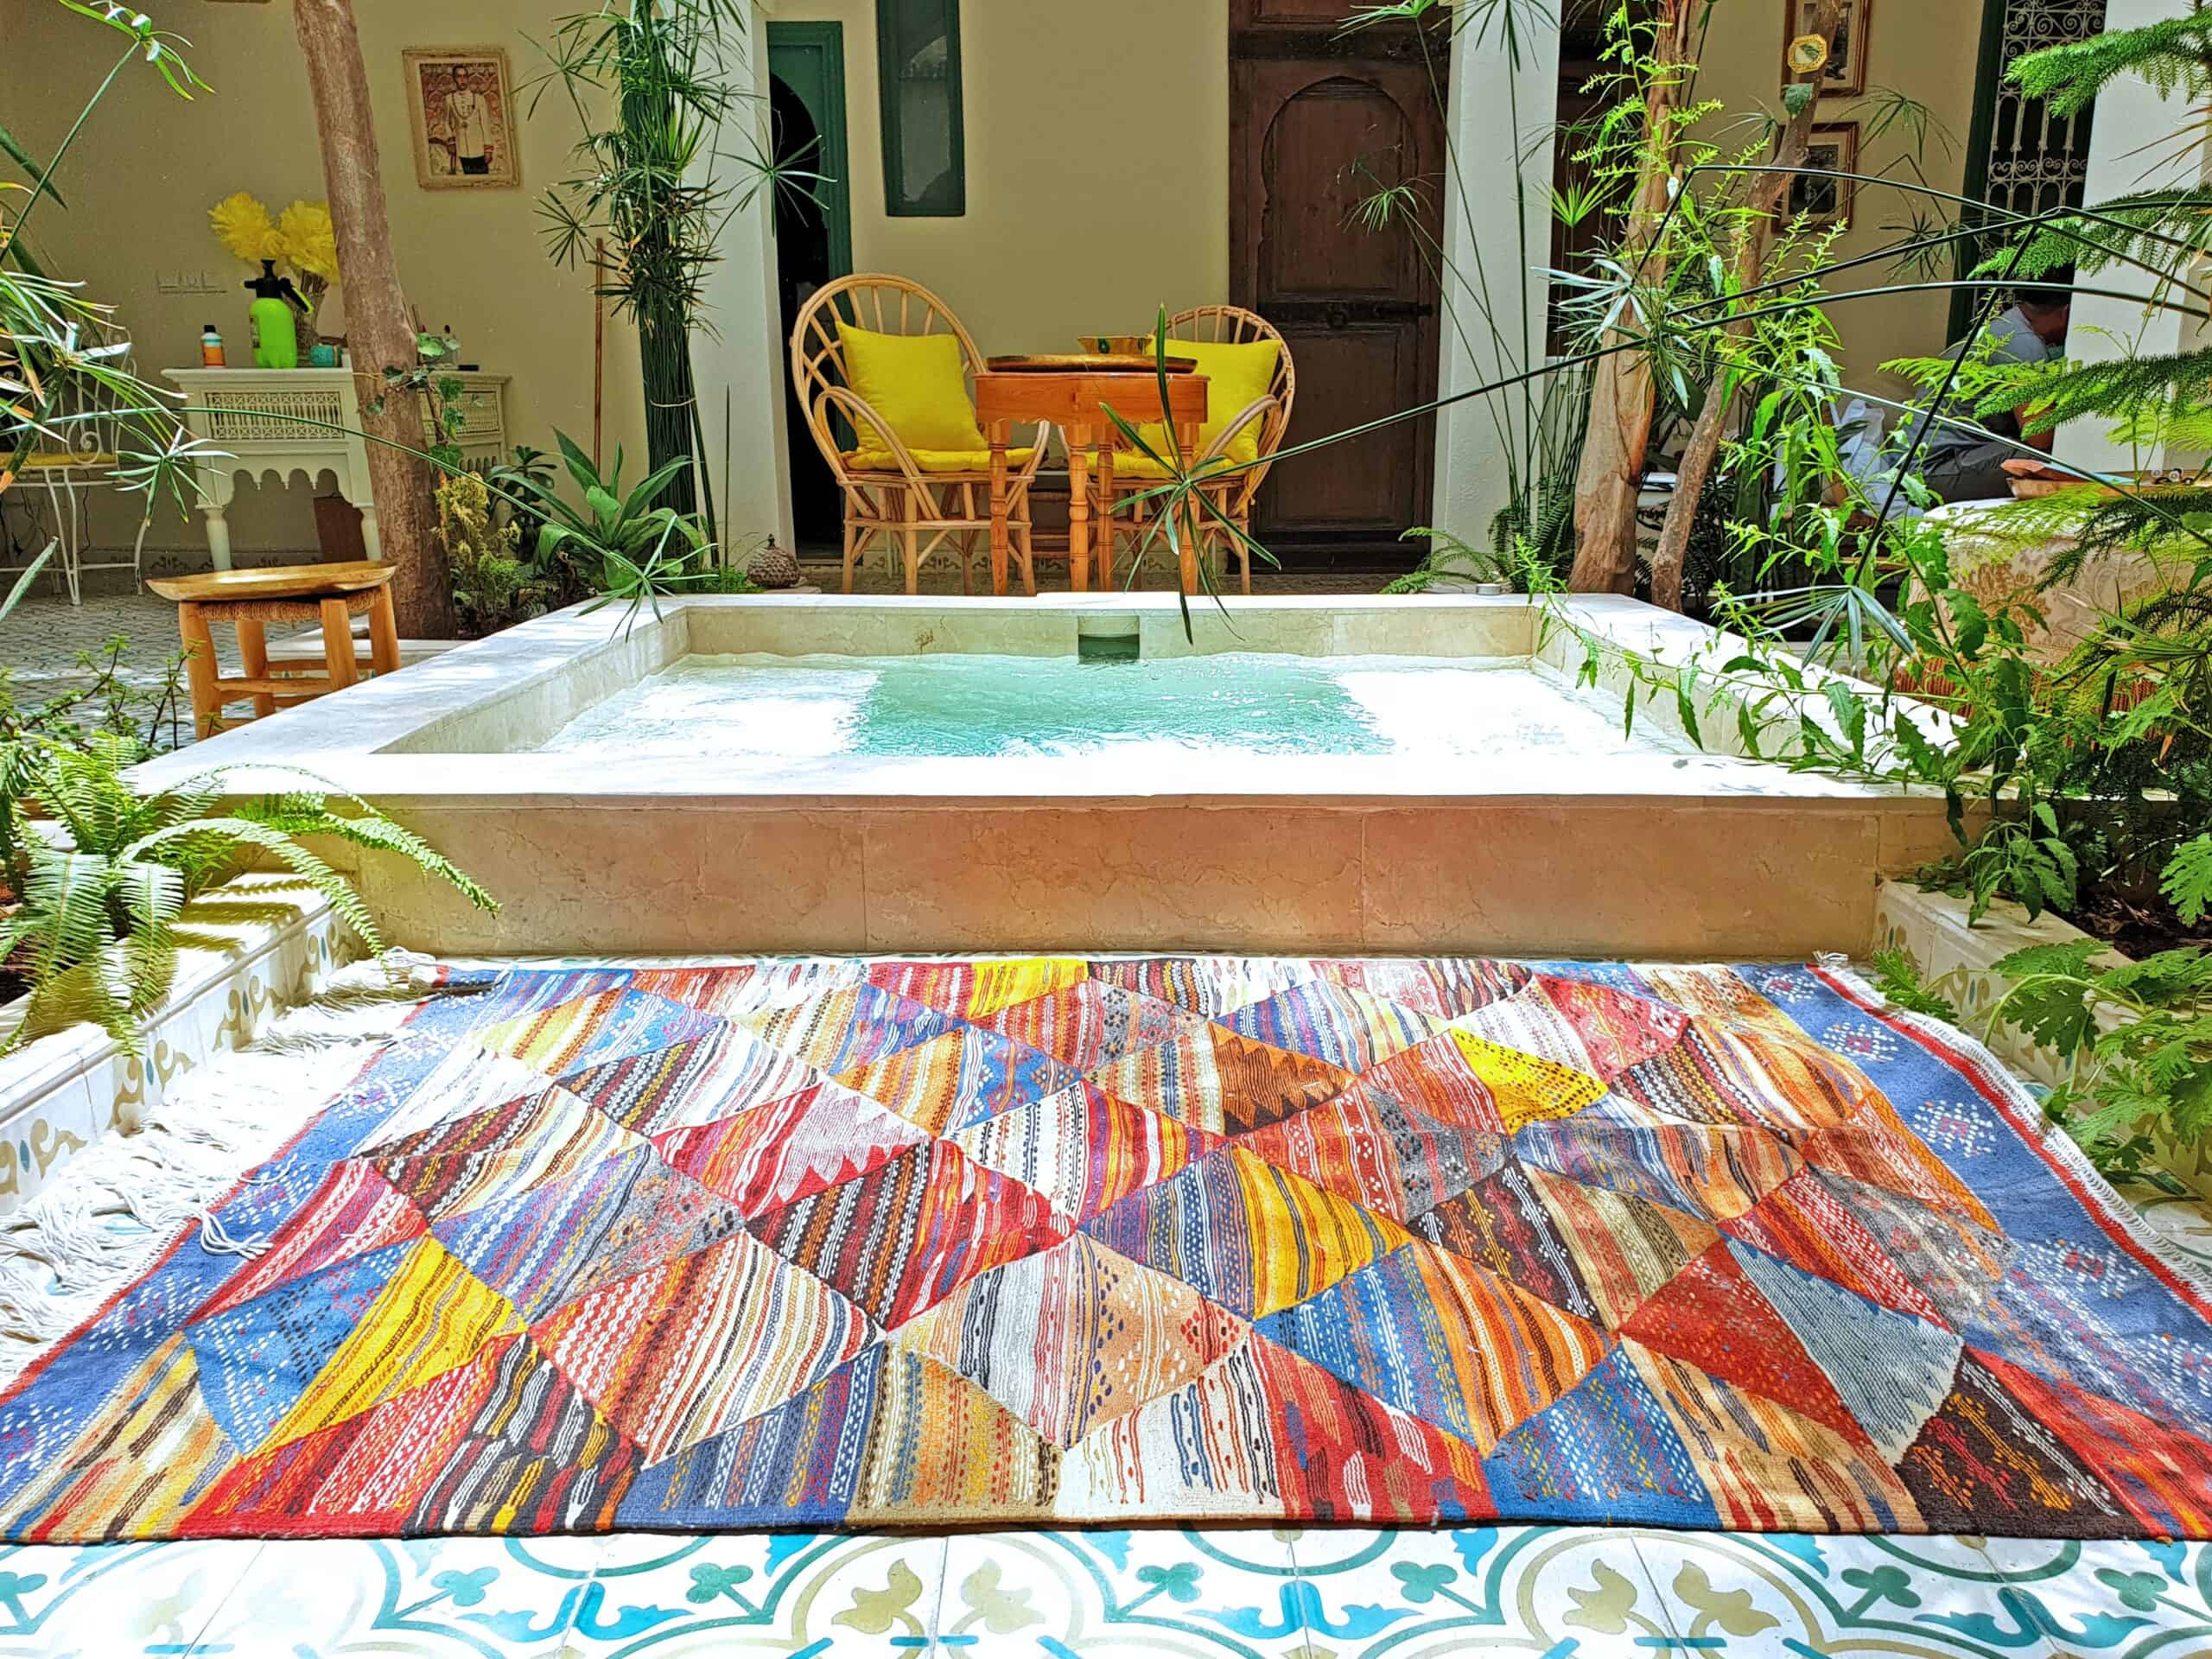 Can a Hot Tub Cover Be Dried Out?